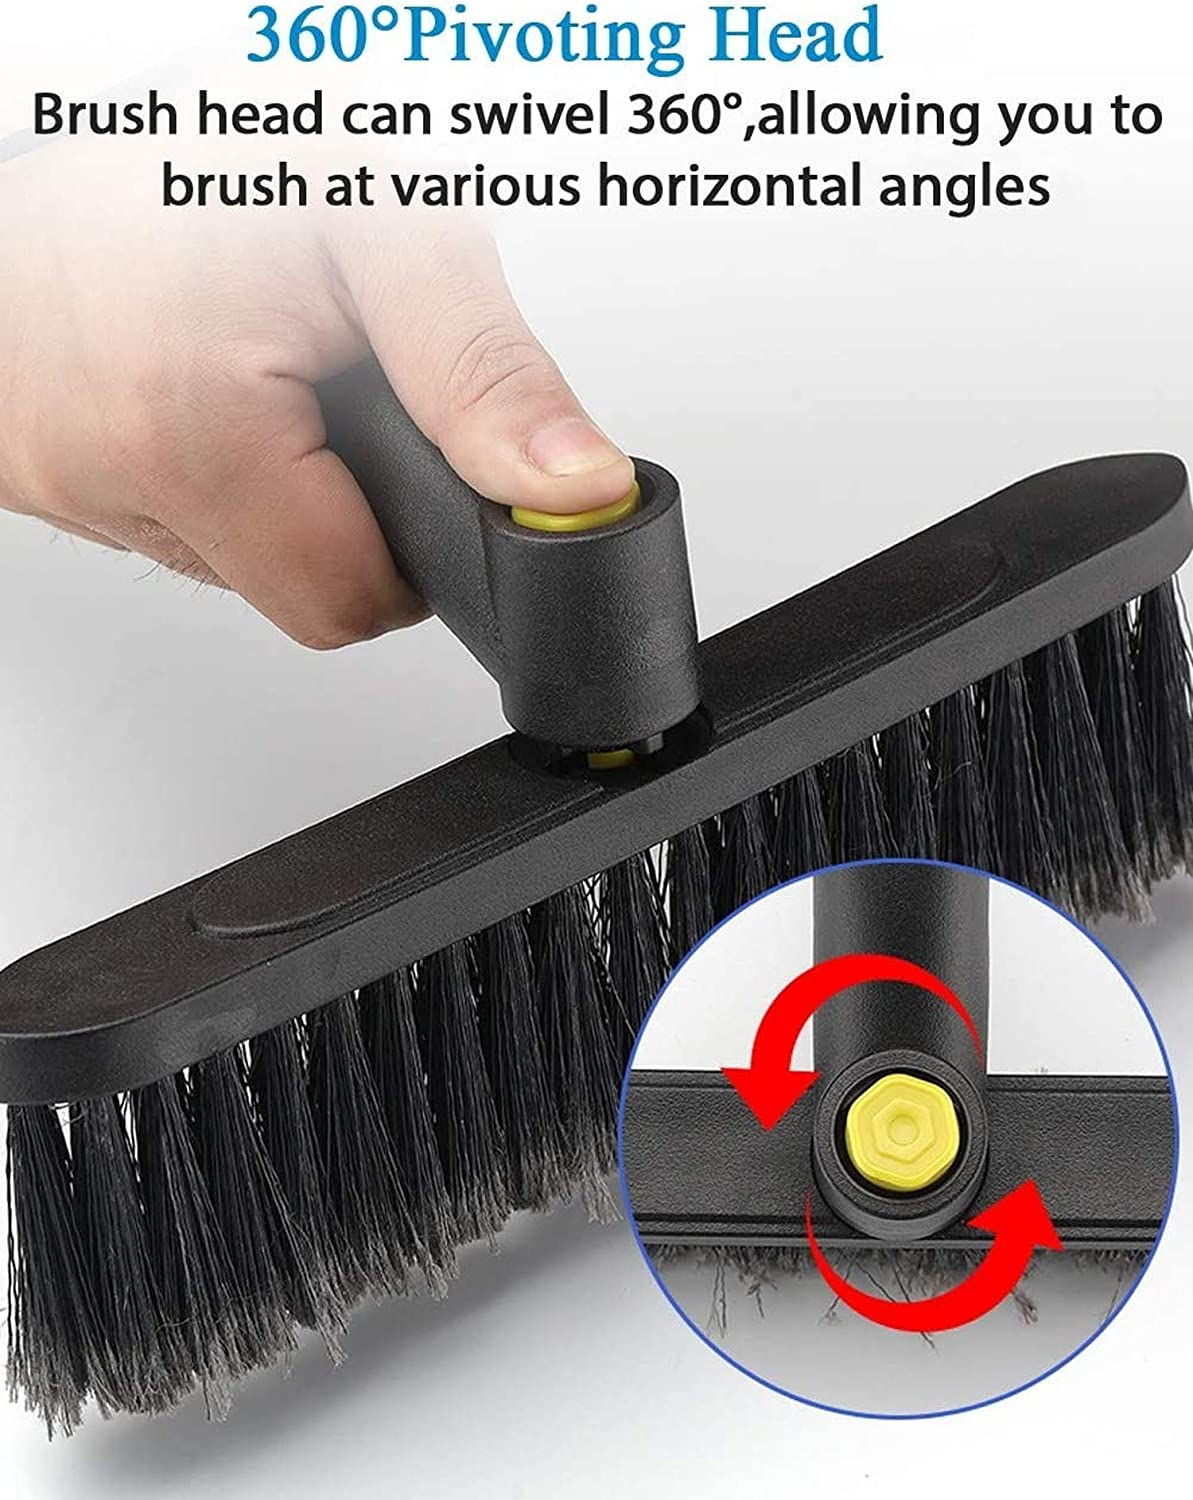 Car Snow Brush with Squeegee,Extendable,Scraper with Foam Grip,Brush Supports 360 Degree Rotation,for Car SUV MPV Light Weight Anti-Freeze Scratch-Free Snow Removal,Blue